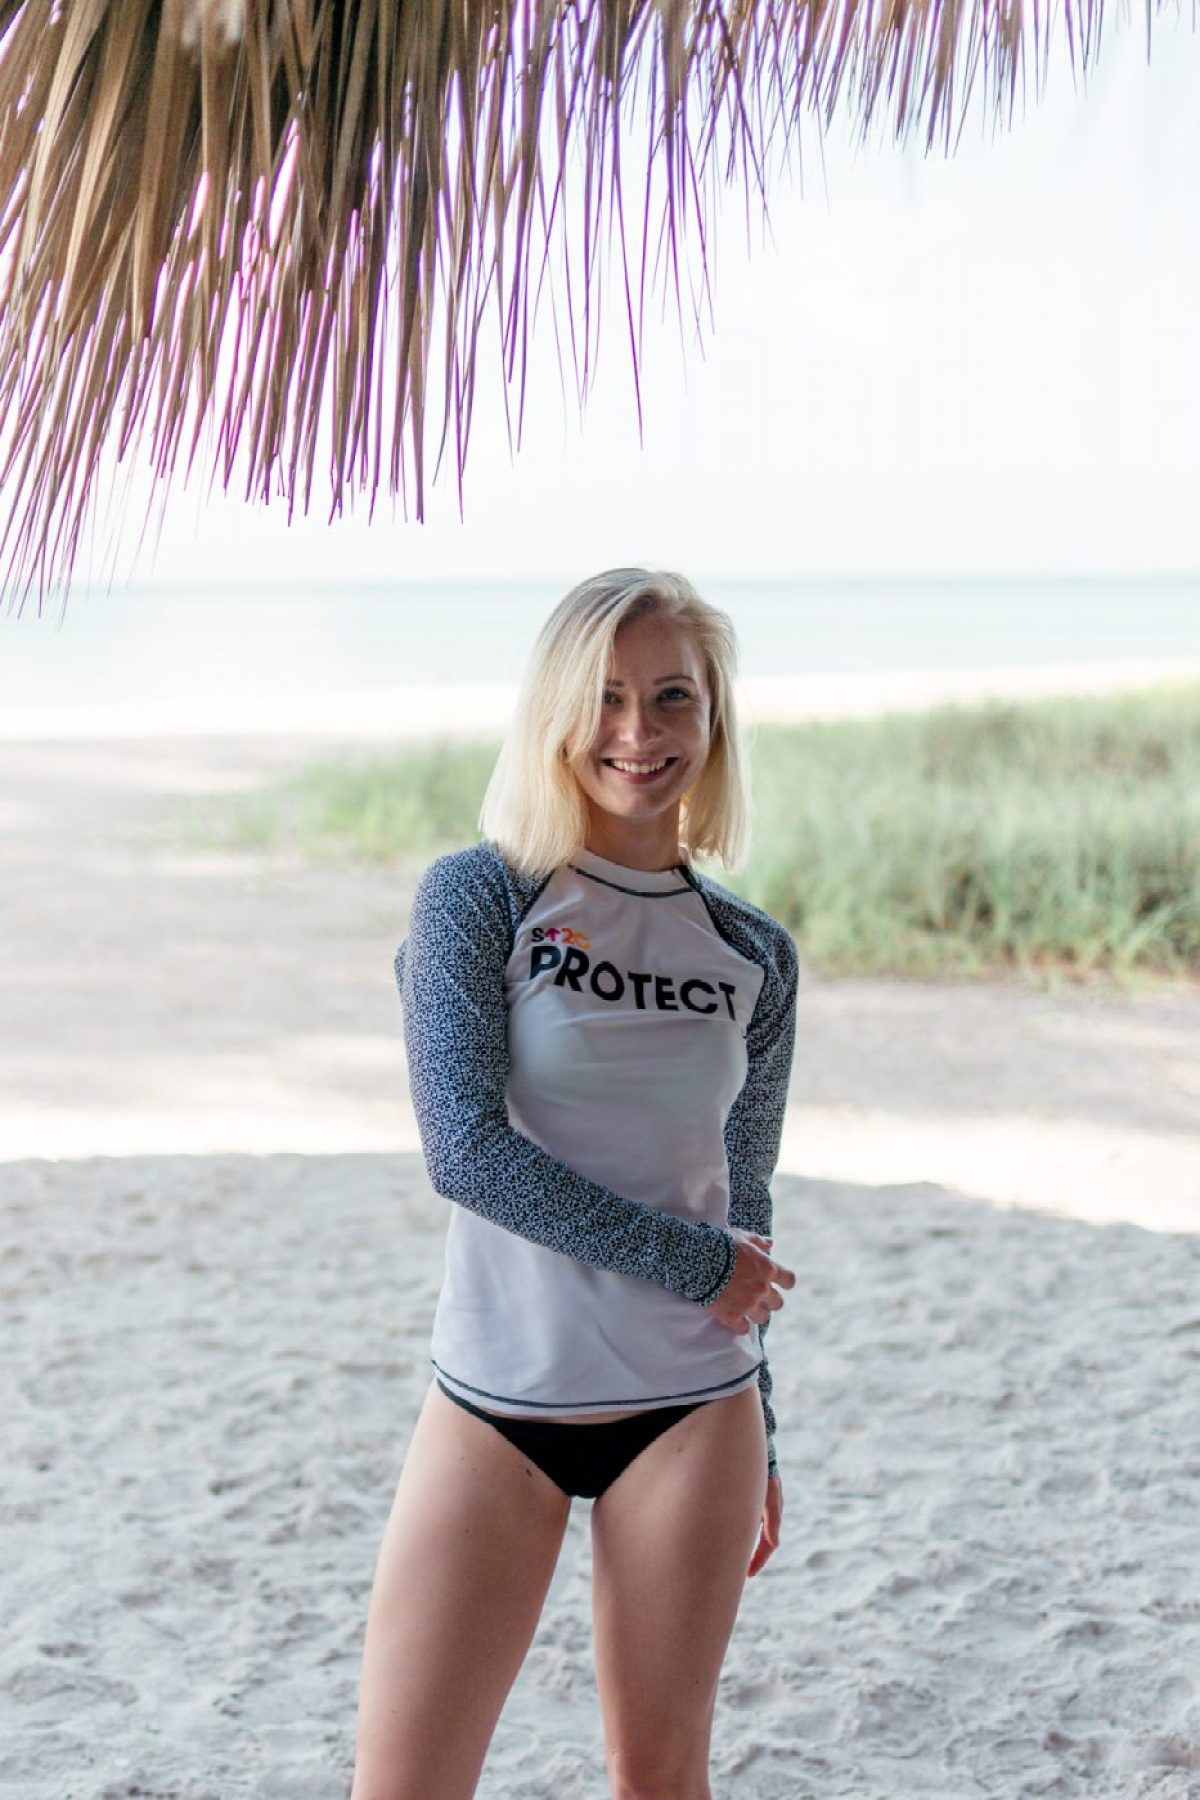 Stand Up 2 Cancer Protect Rashguard from Cabana Life worn by Jenny of Sweet Teal